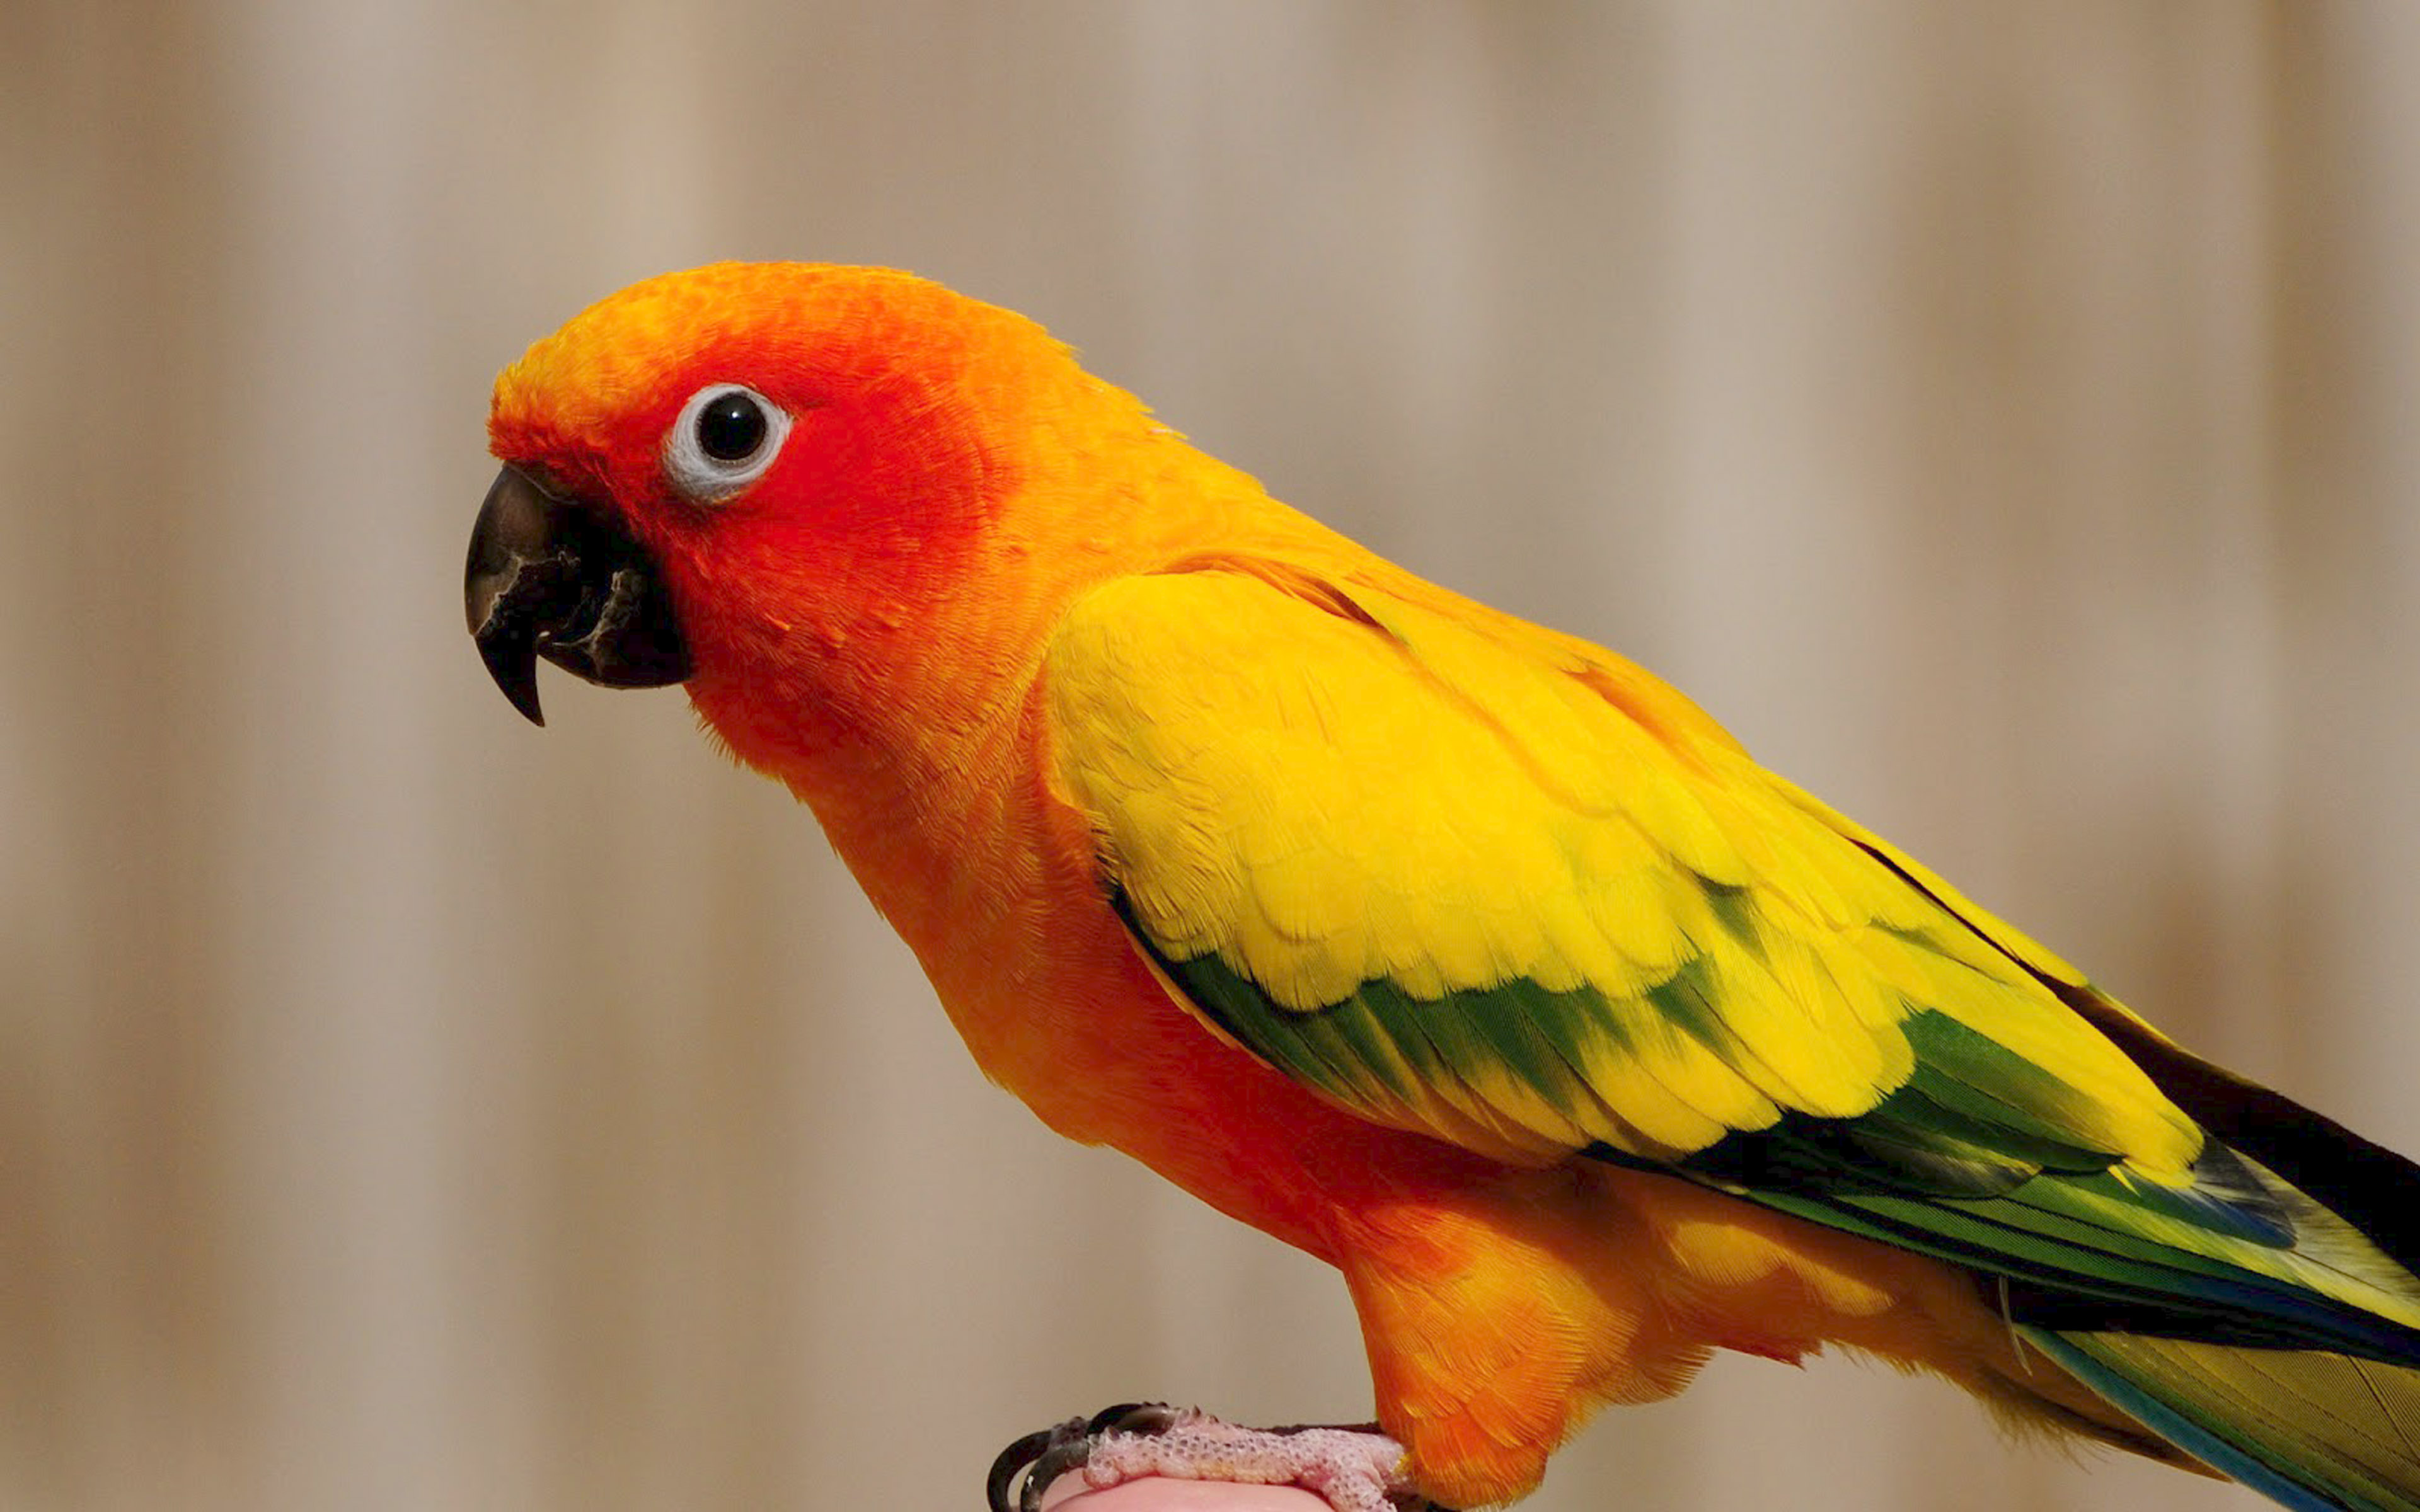 Free Download Cute Baby Wallpaper For Pc Yellow Parrot Wallpaper Hd 3840x2400 Wallpapers13 Com